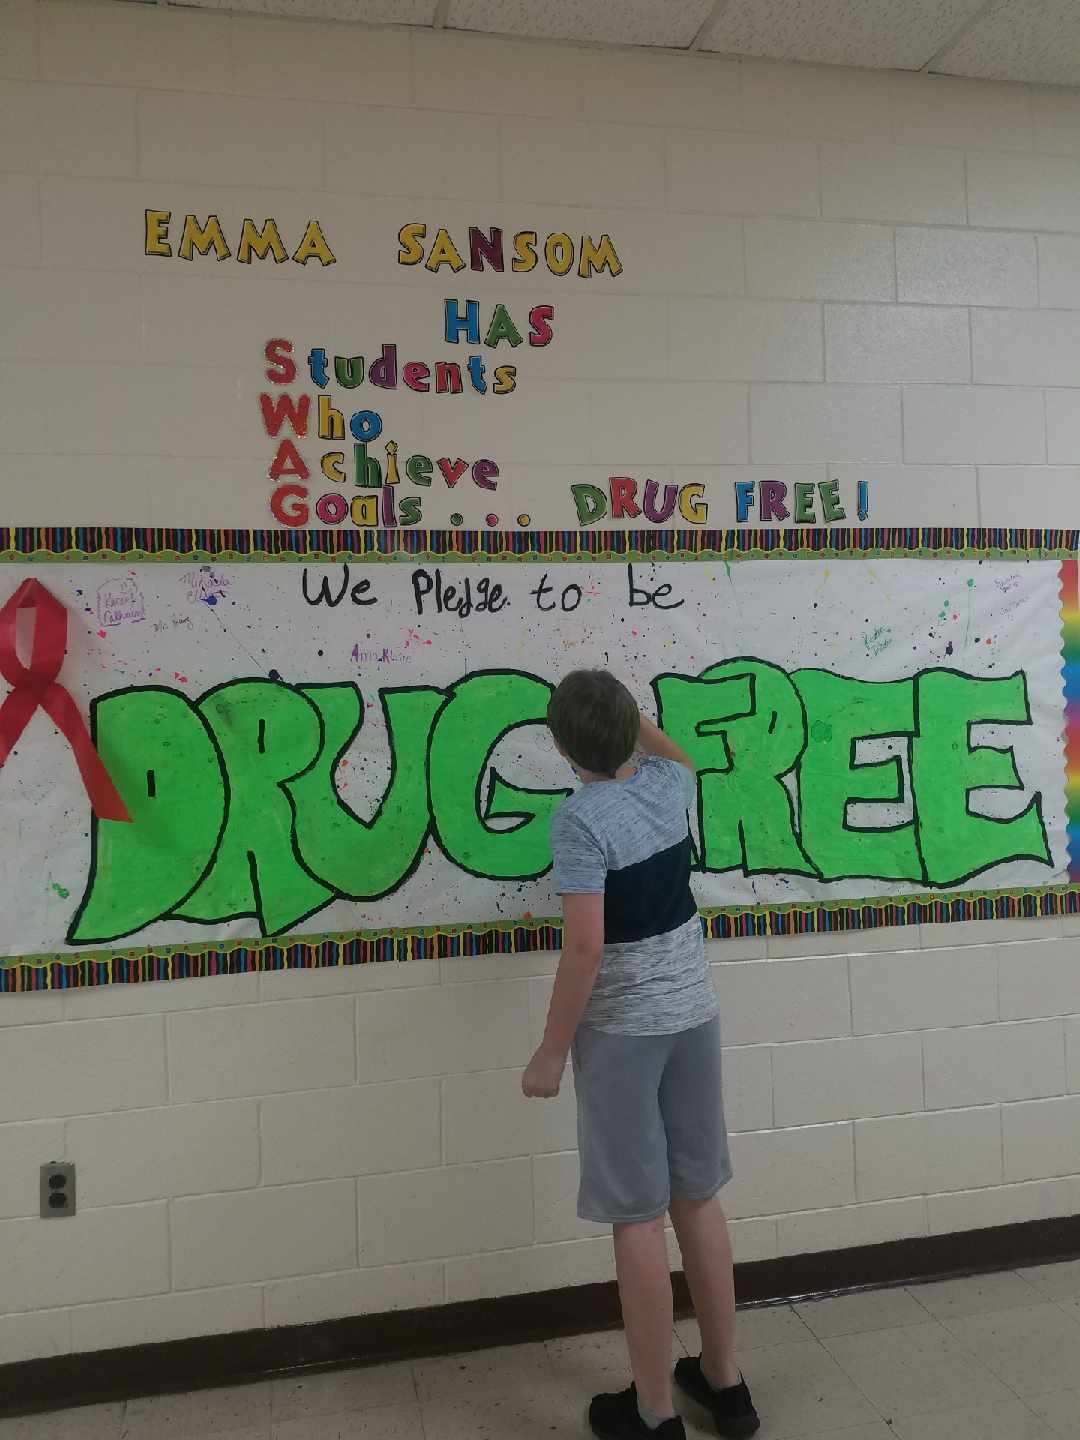 A 7th grade student signs the DRUG FREE pledge sign